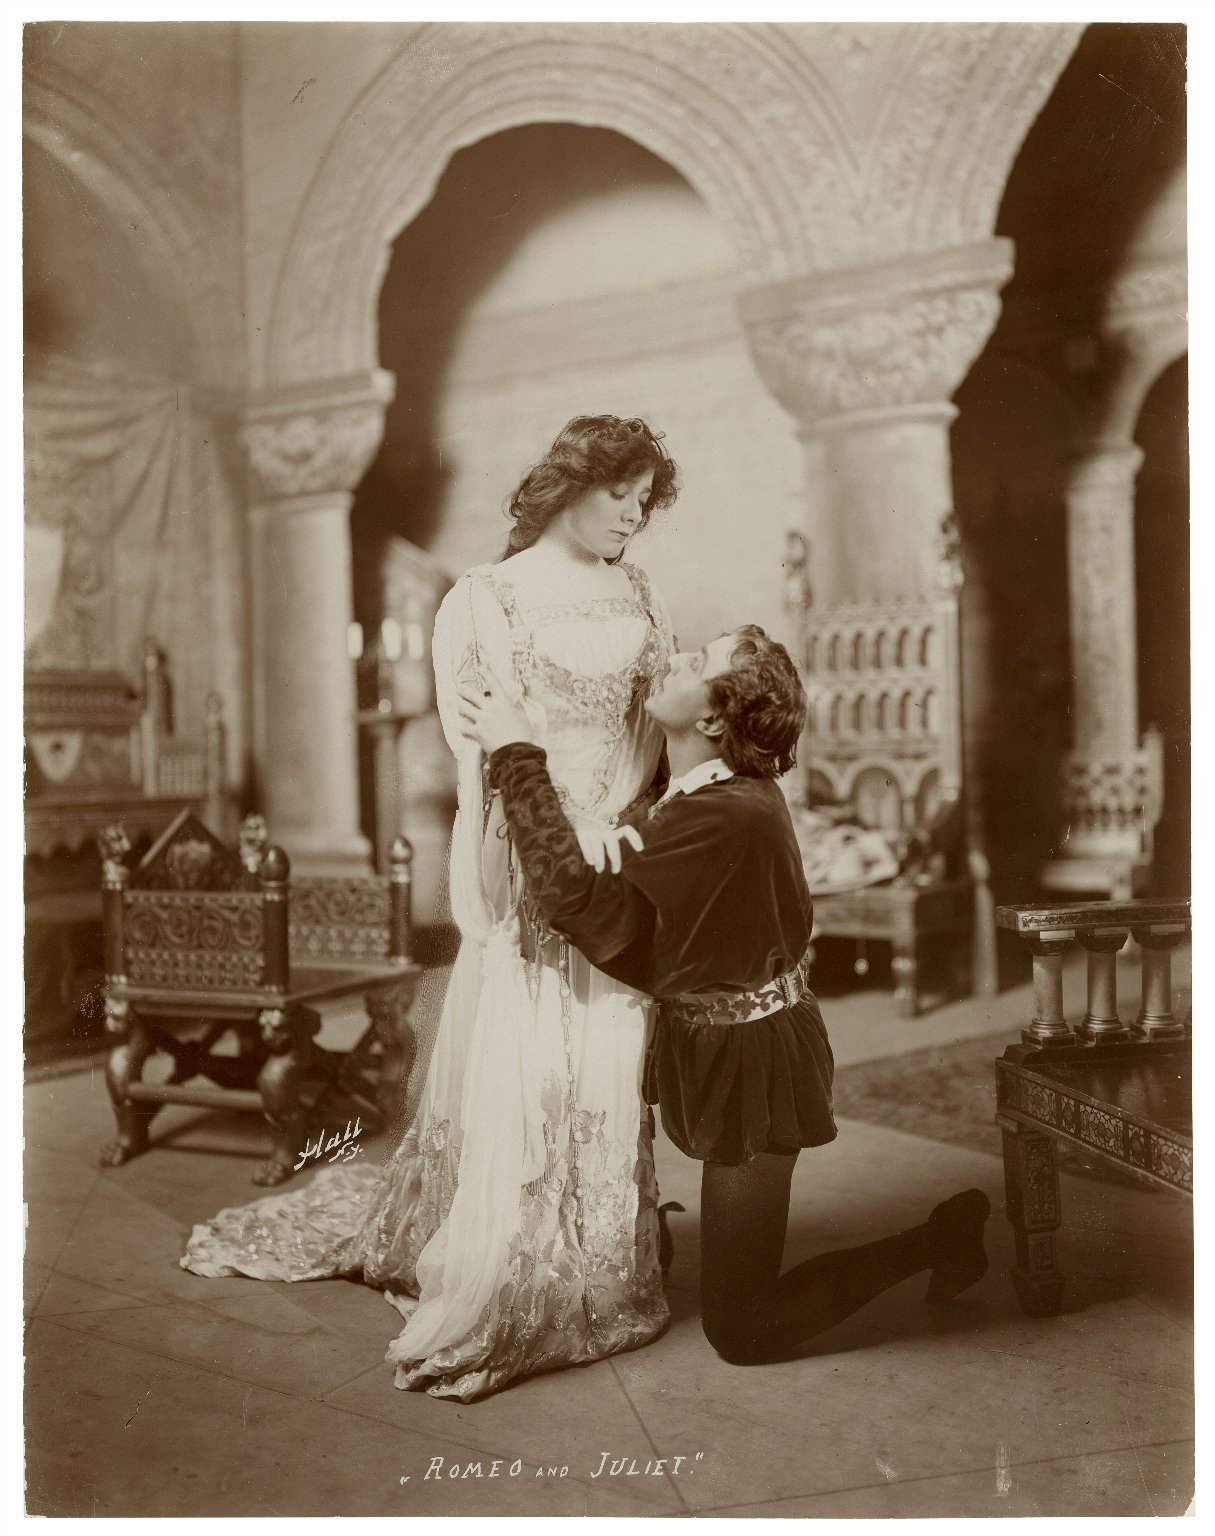 Romeo and Juliet starring E.H. Sothern and Julia Marlowe